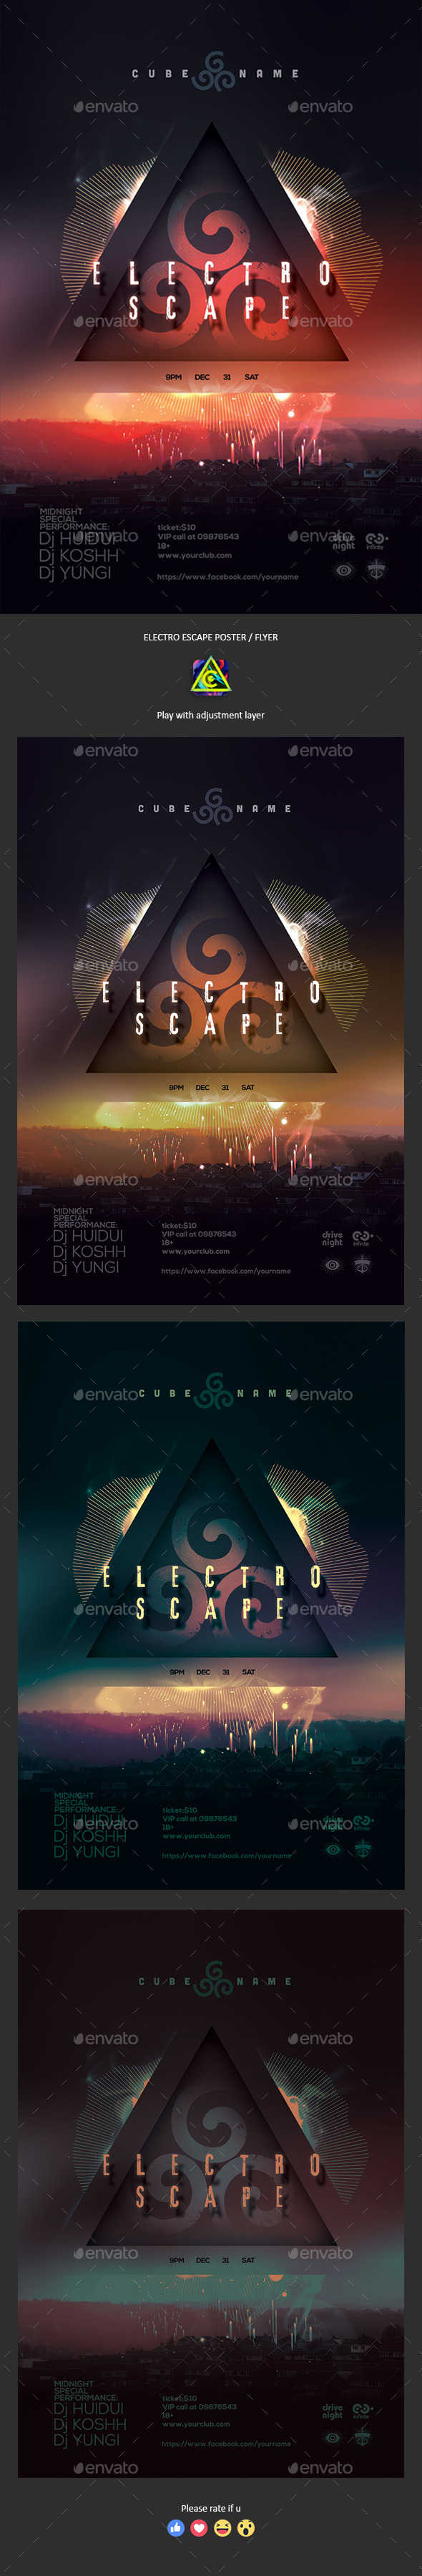 Electro Escape Poster / Flyer - Clubs & Parties Events